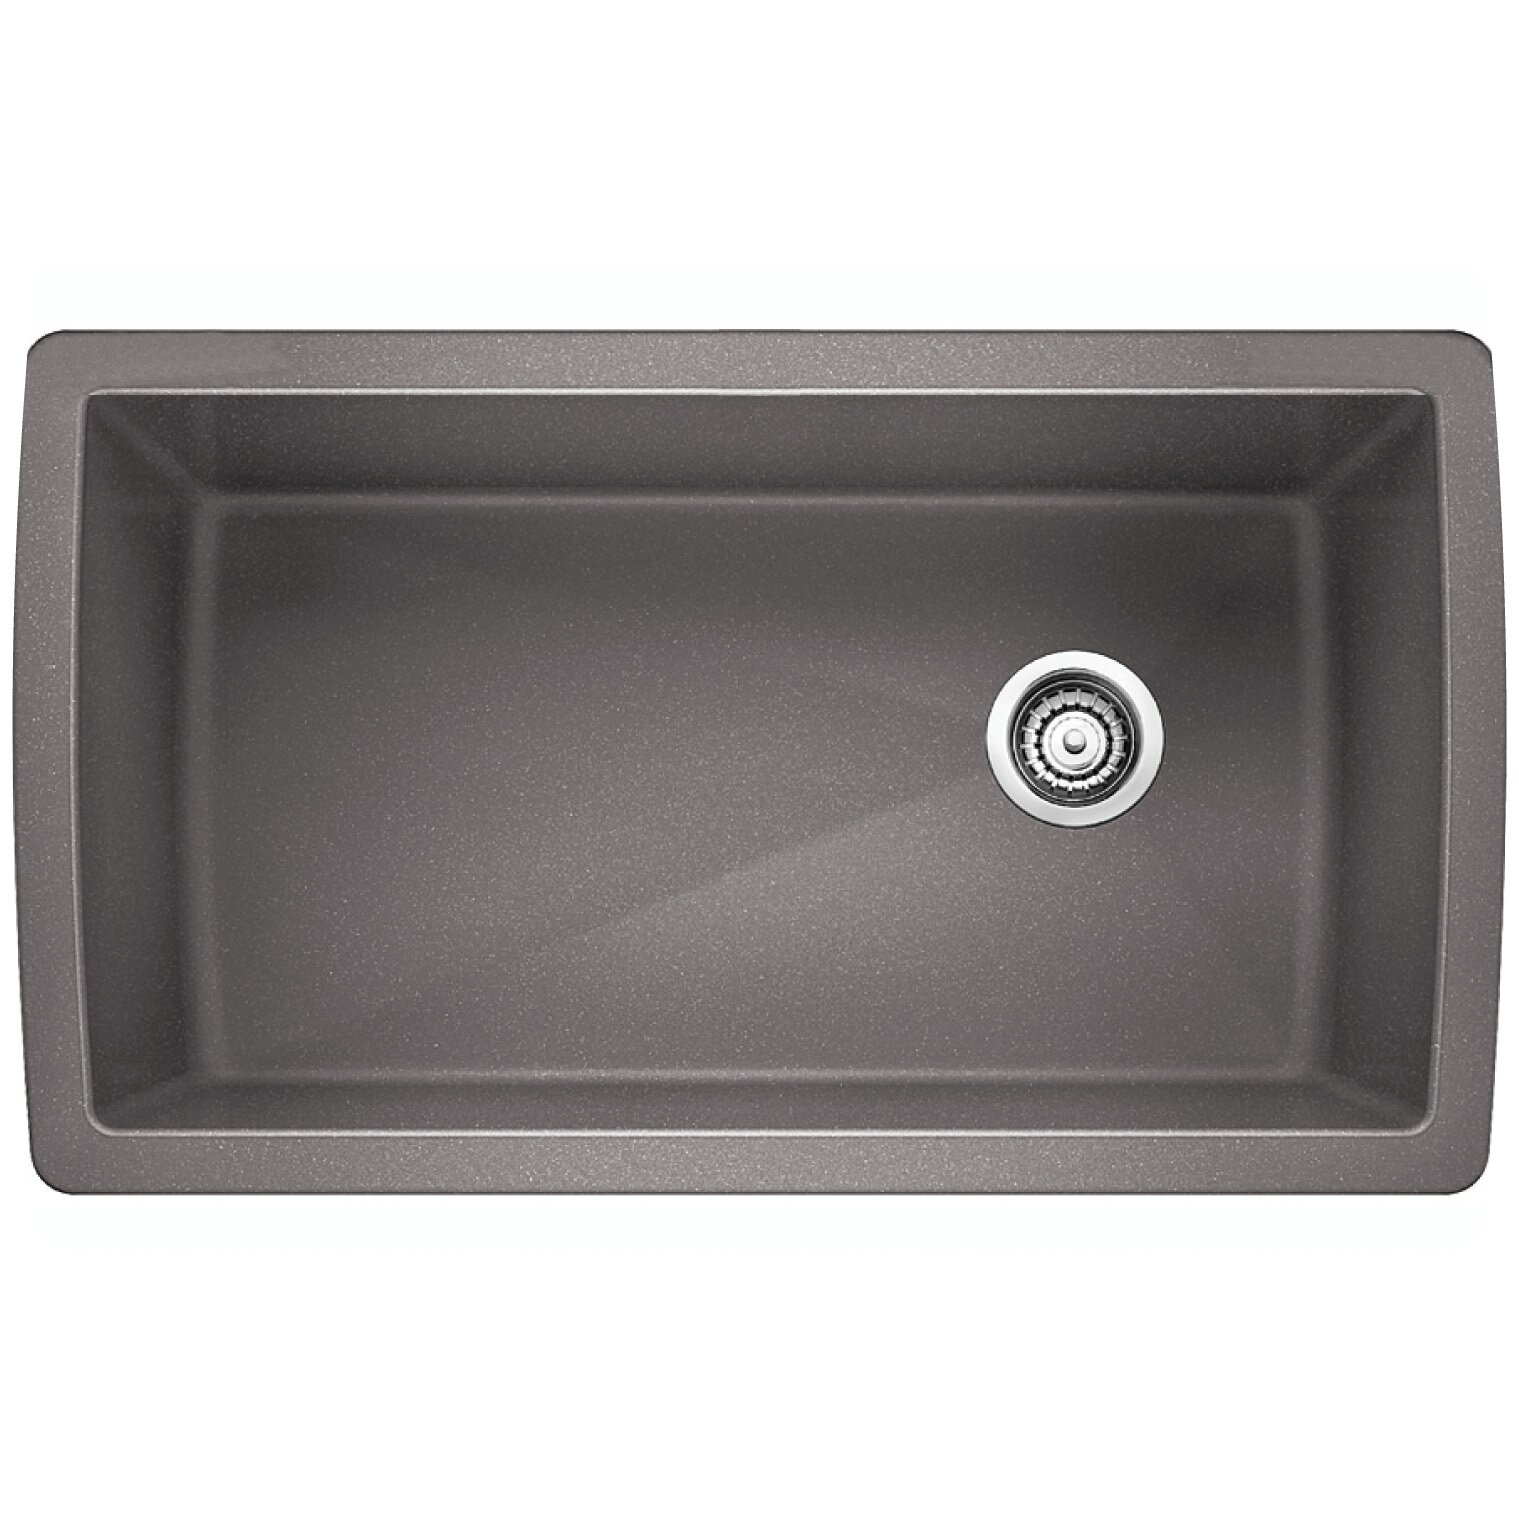 Composite Granite Kitchen Sinks Granite Composite Kitchen Sinks Youll Love Wayfair